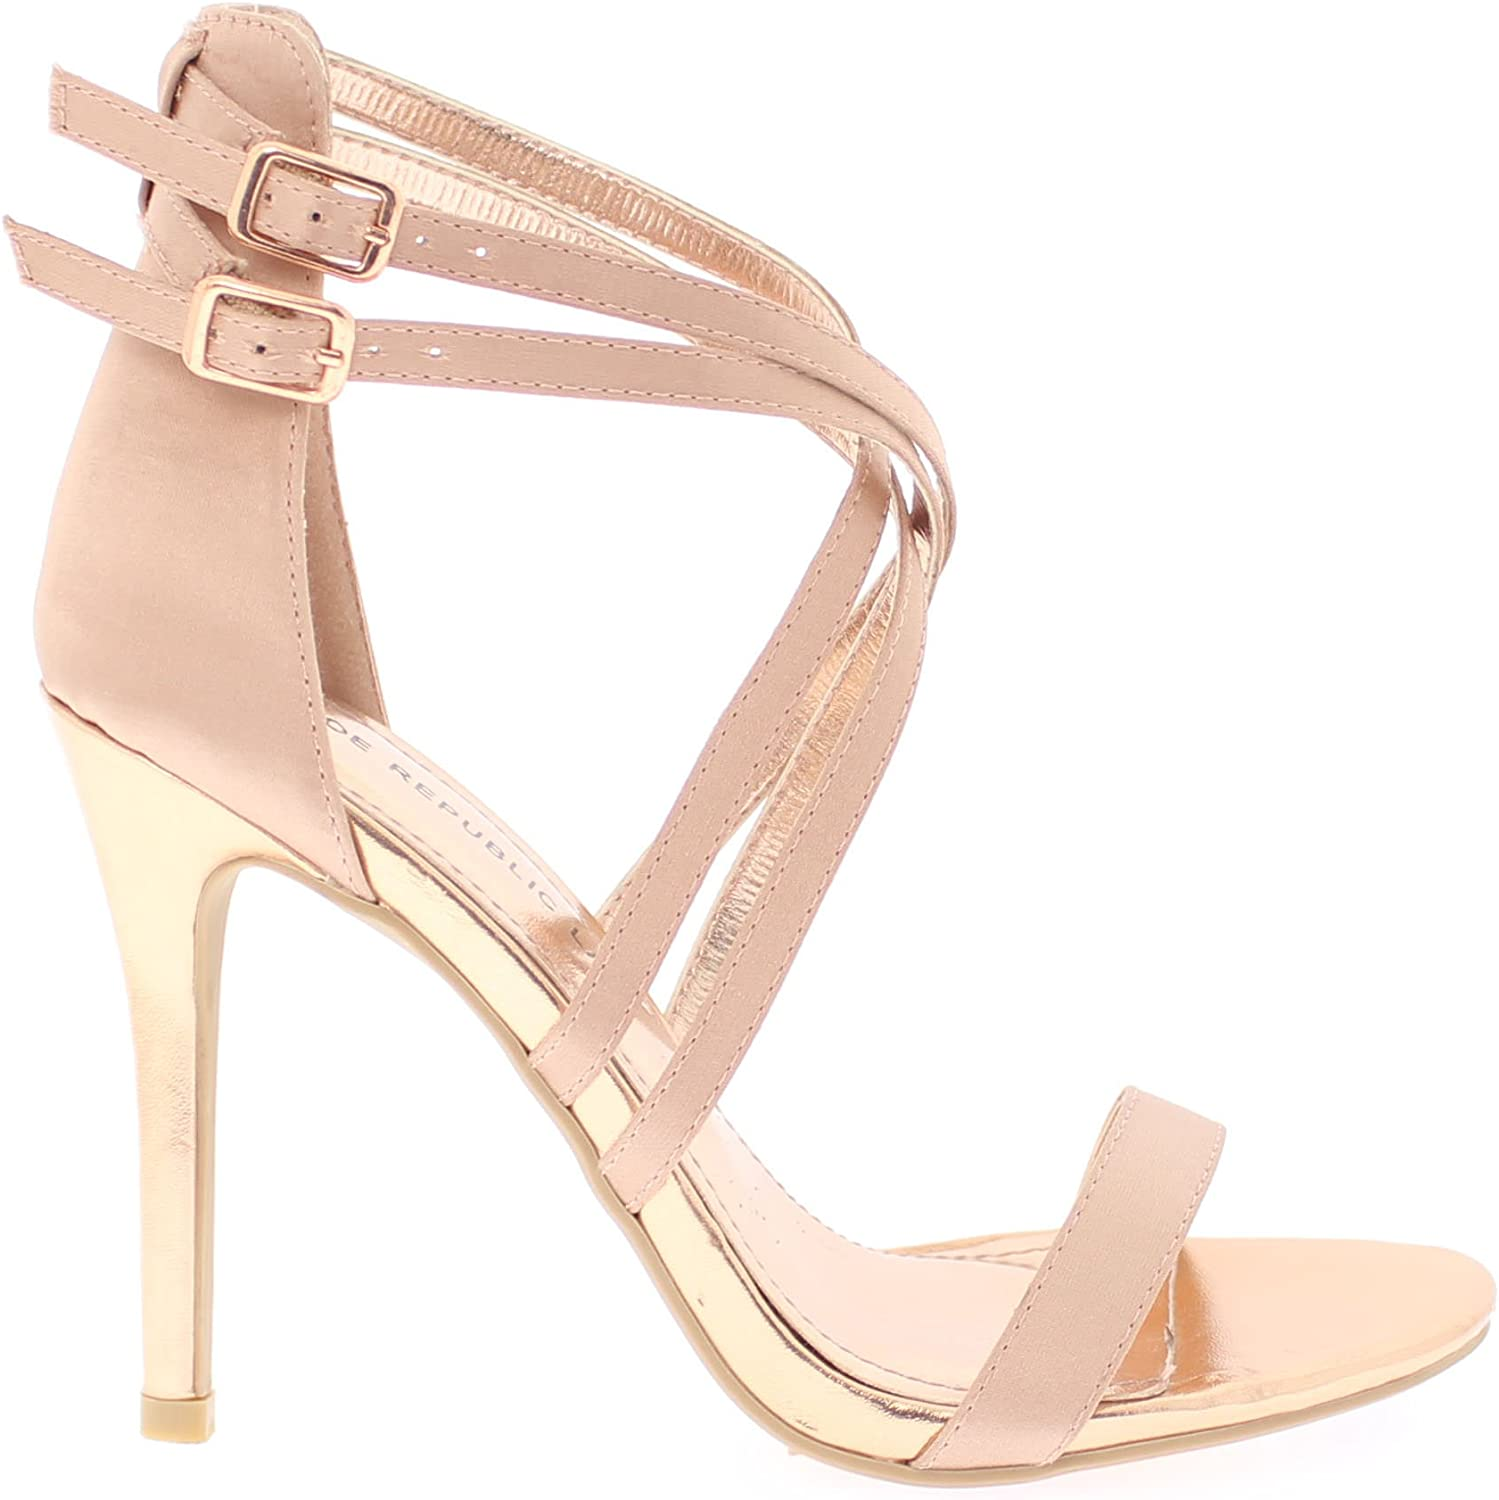 shoes Republic Crisscrossed Straps Open Toe Sandal with Stiletto Heel Chavez